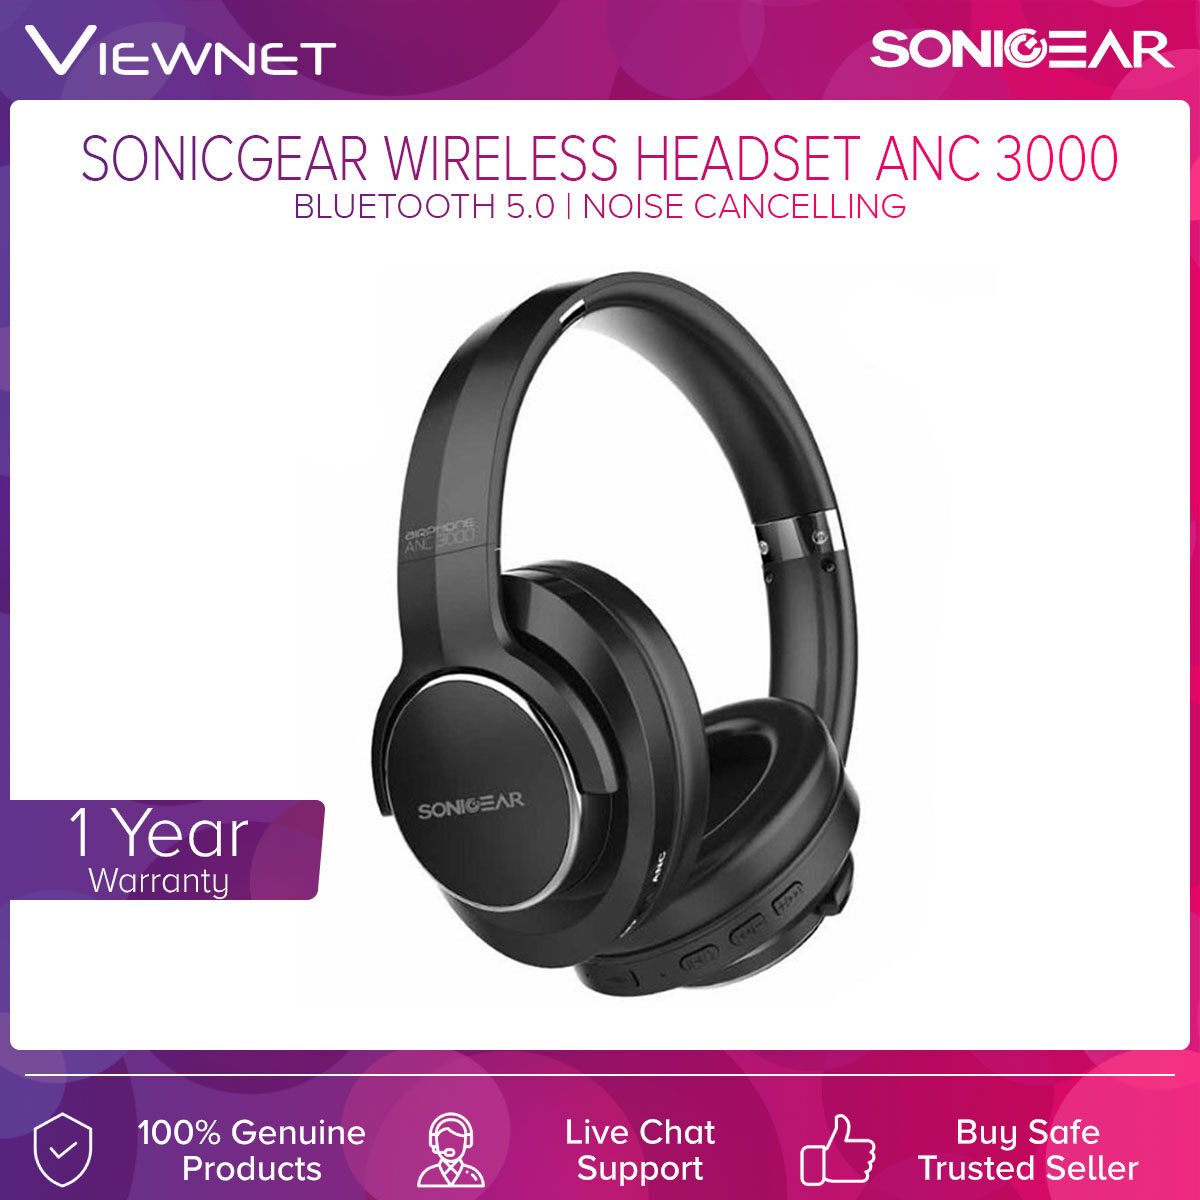 SonicGear Wireless Headset ANC3000 with Bluetooth 5.0, Up To 15 Hours Batery Life, 40MM Driver, Active Noise Cancelling, 3.5 Audio Jack, Side Button